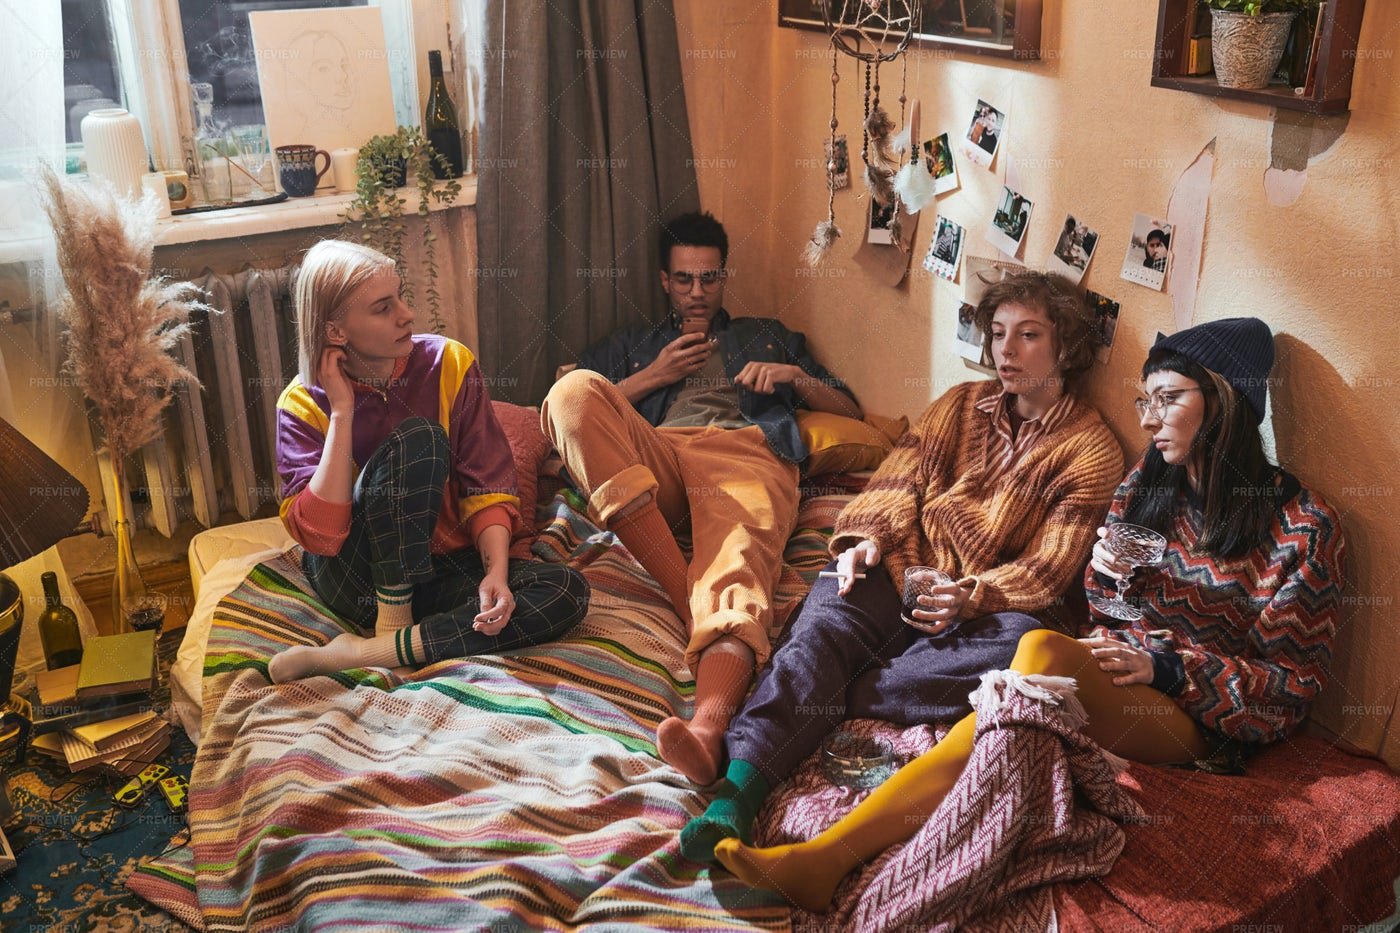 Friends Gathering Together At Home: Stock Photos